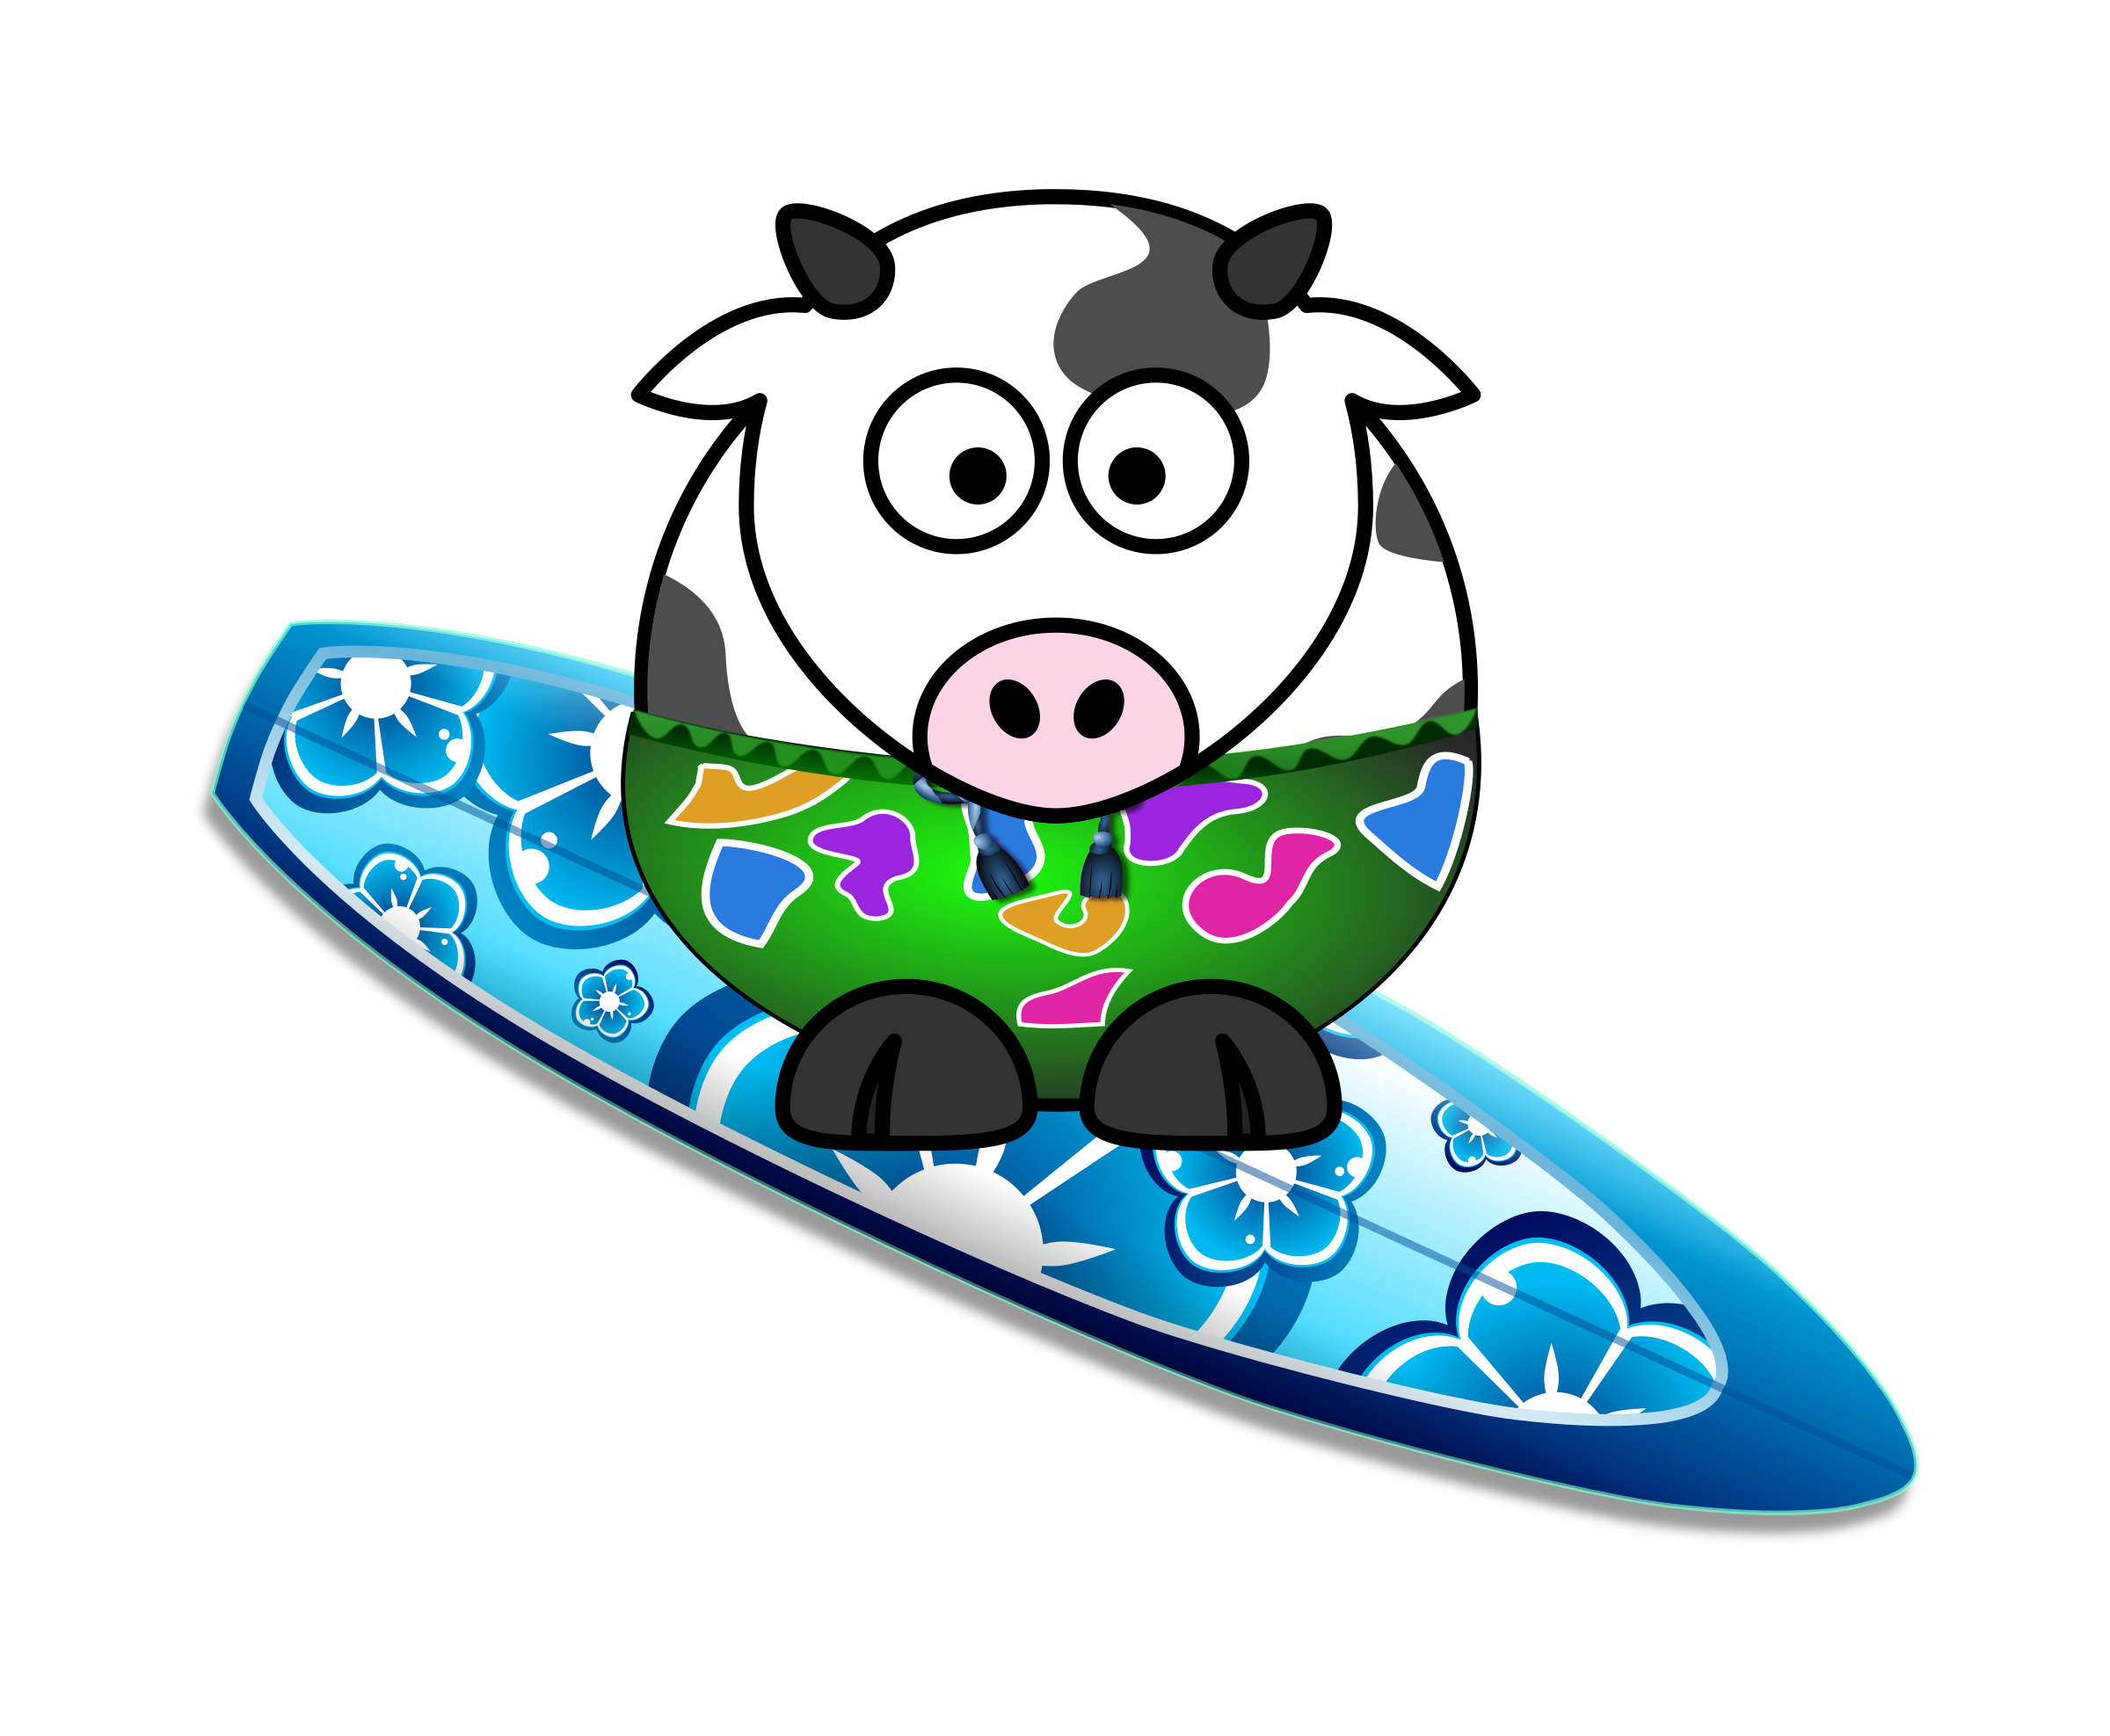 Surfer Cow by KAMC